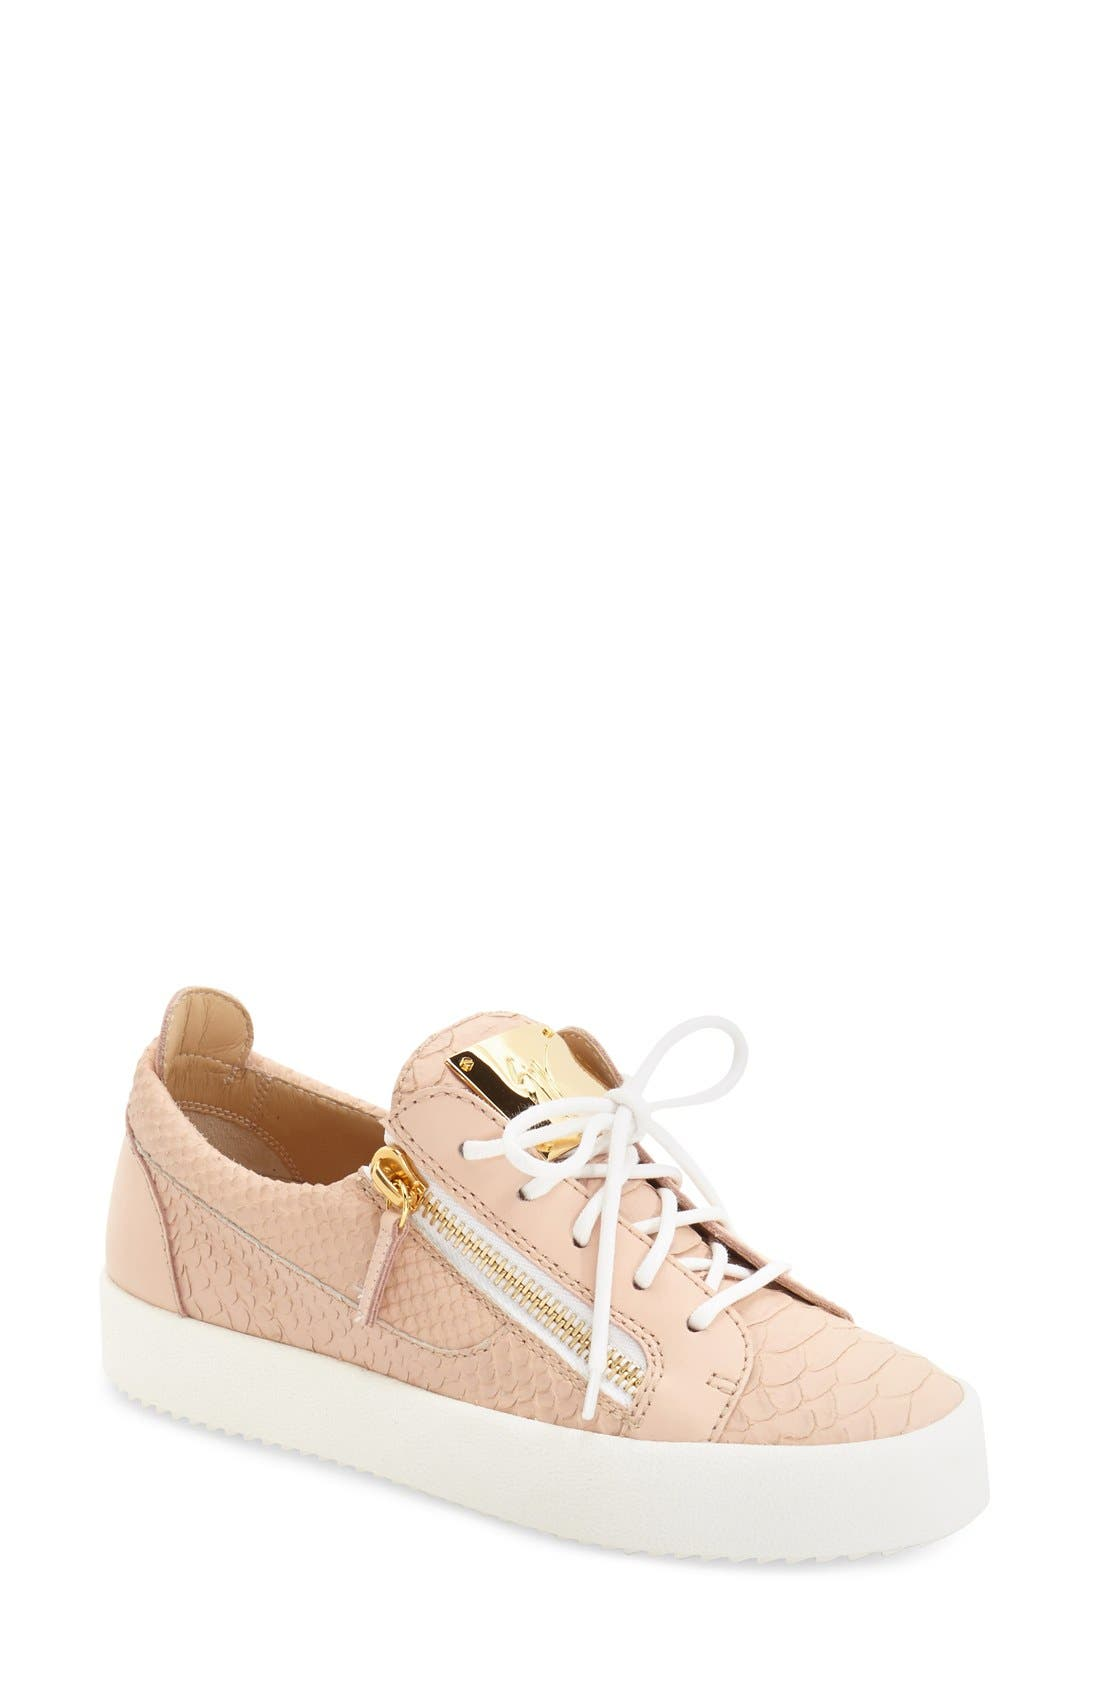 'May London' Snake Embossed Low Top Sneaker,                             Main thumbnail 1, color,                             Nude Leather